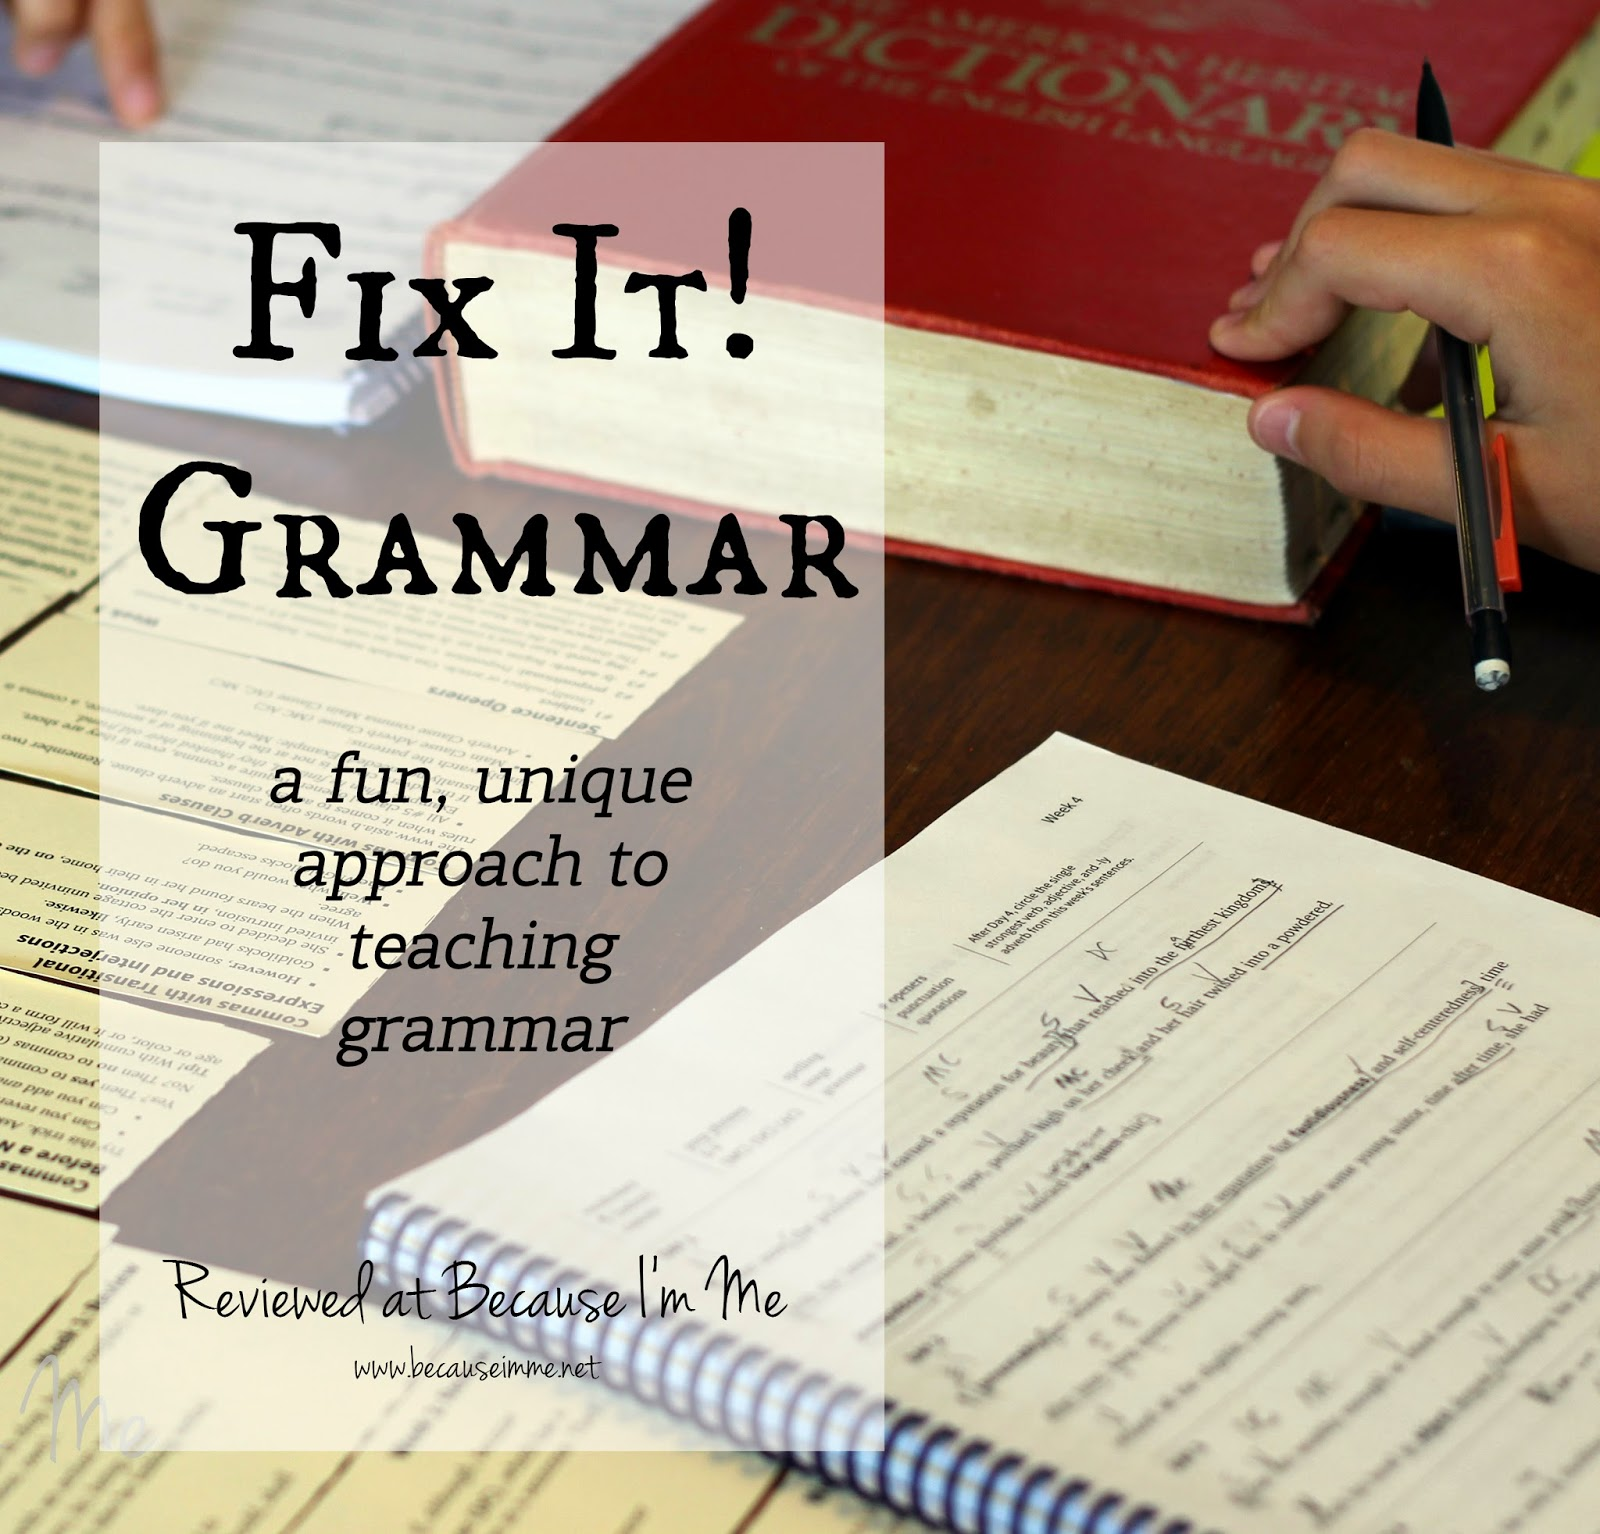 Fix It Grammar review at Because I'm Me, a unique approach to teaching grammar for for kids in 3rd through 12th grades